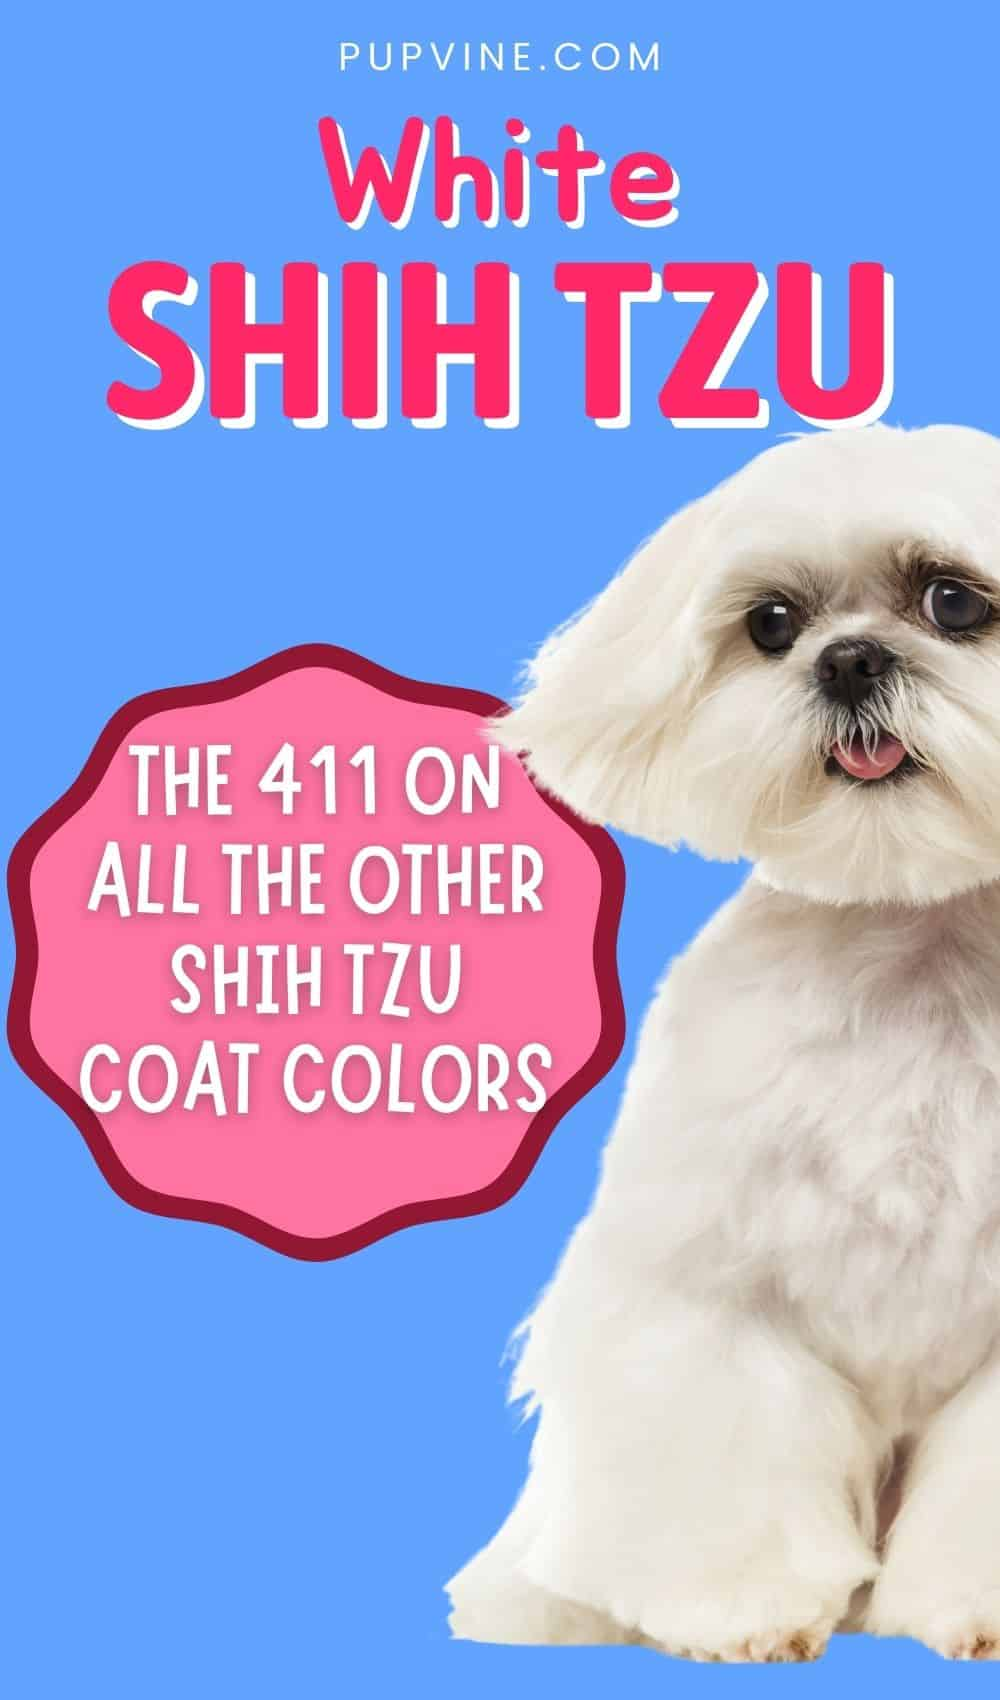 White Shih Tzu And The 411 On All The Other Shih Tzu Coat Colors